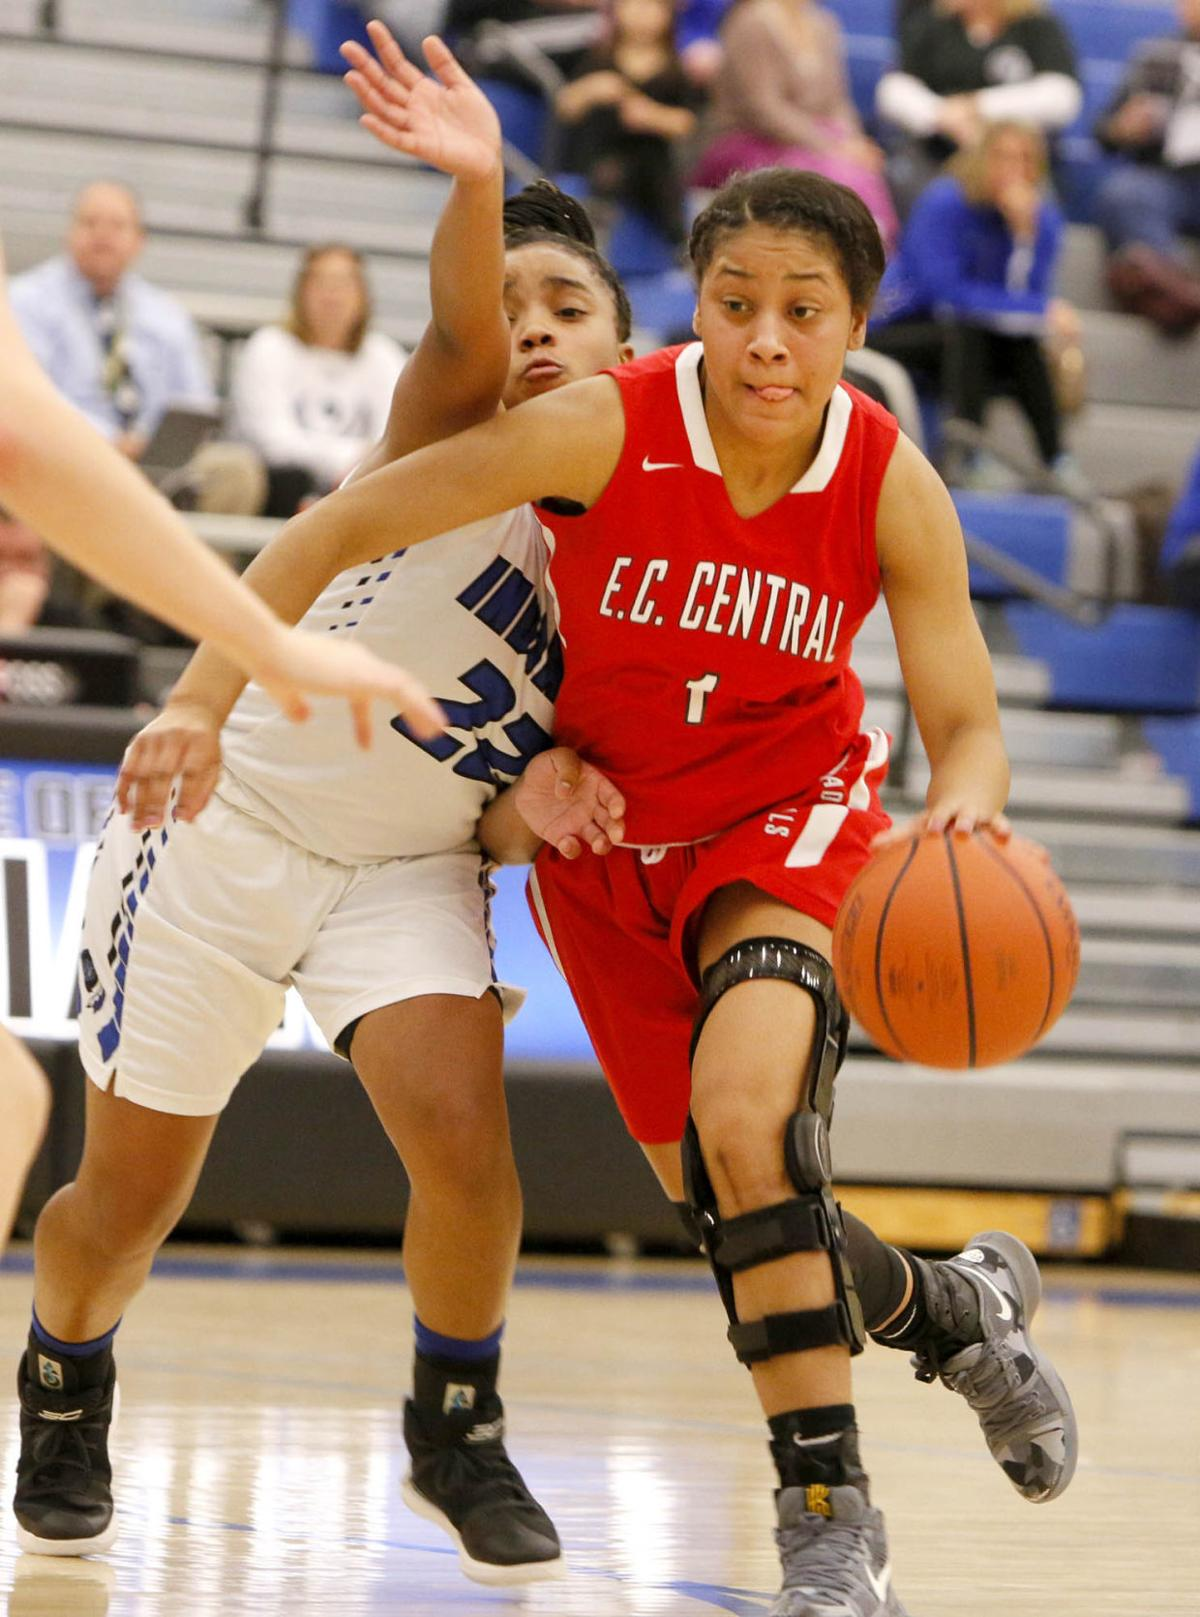 E.C. Central at Lake Central girls basketball